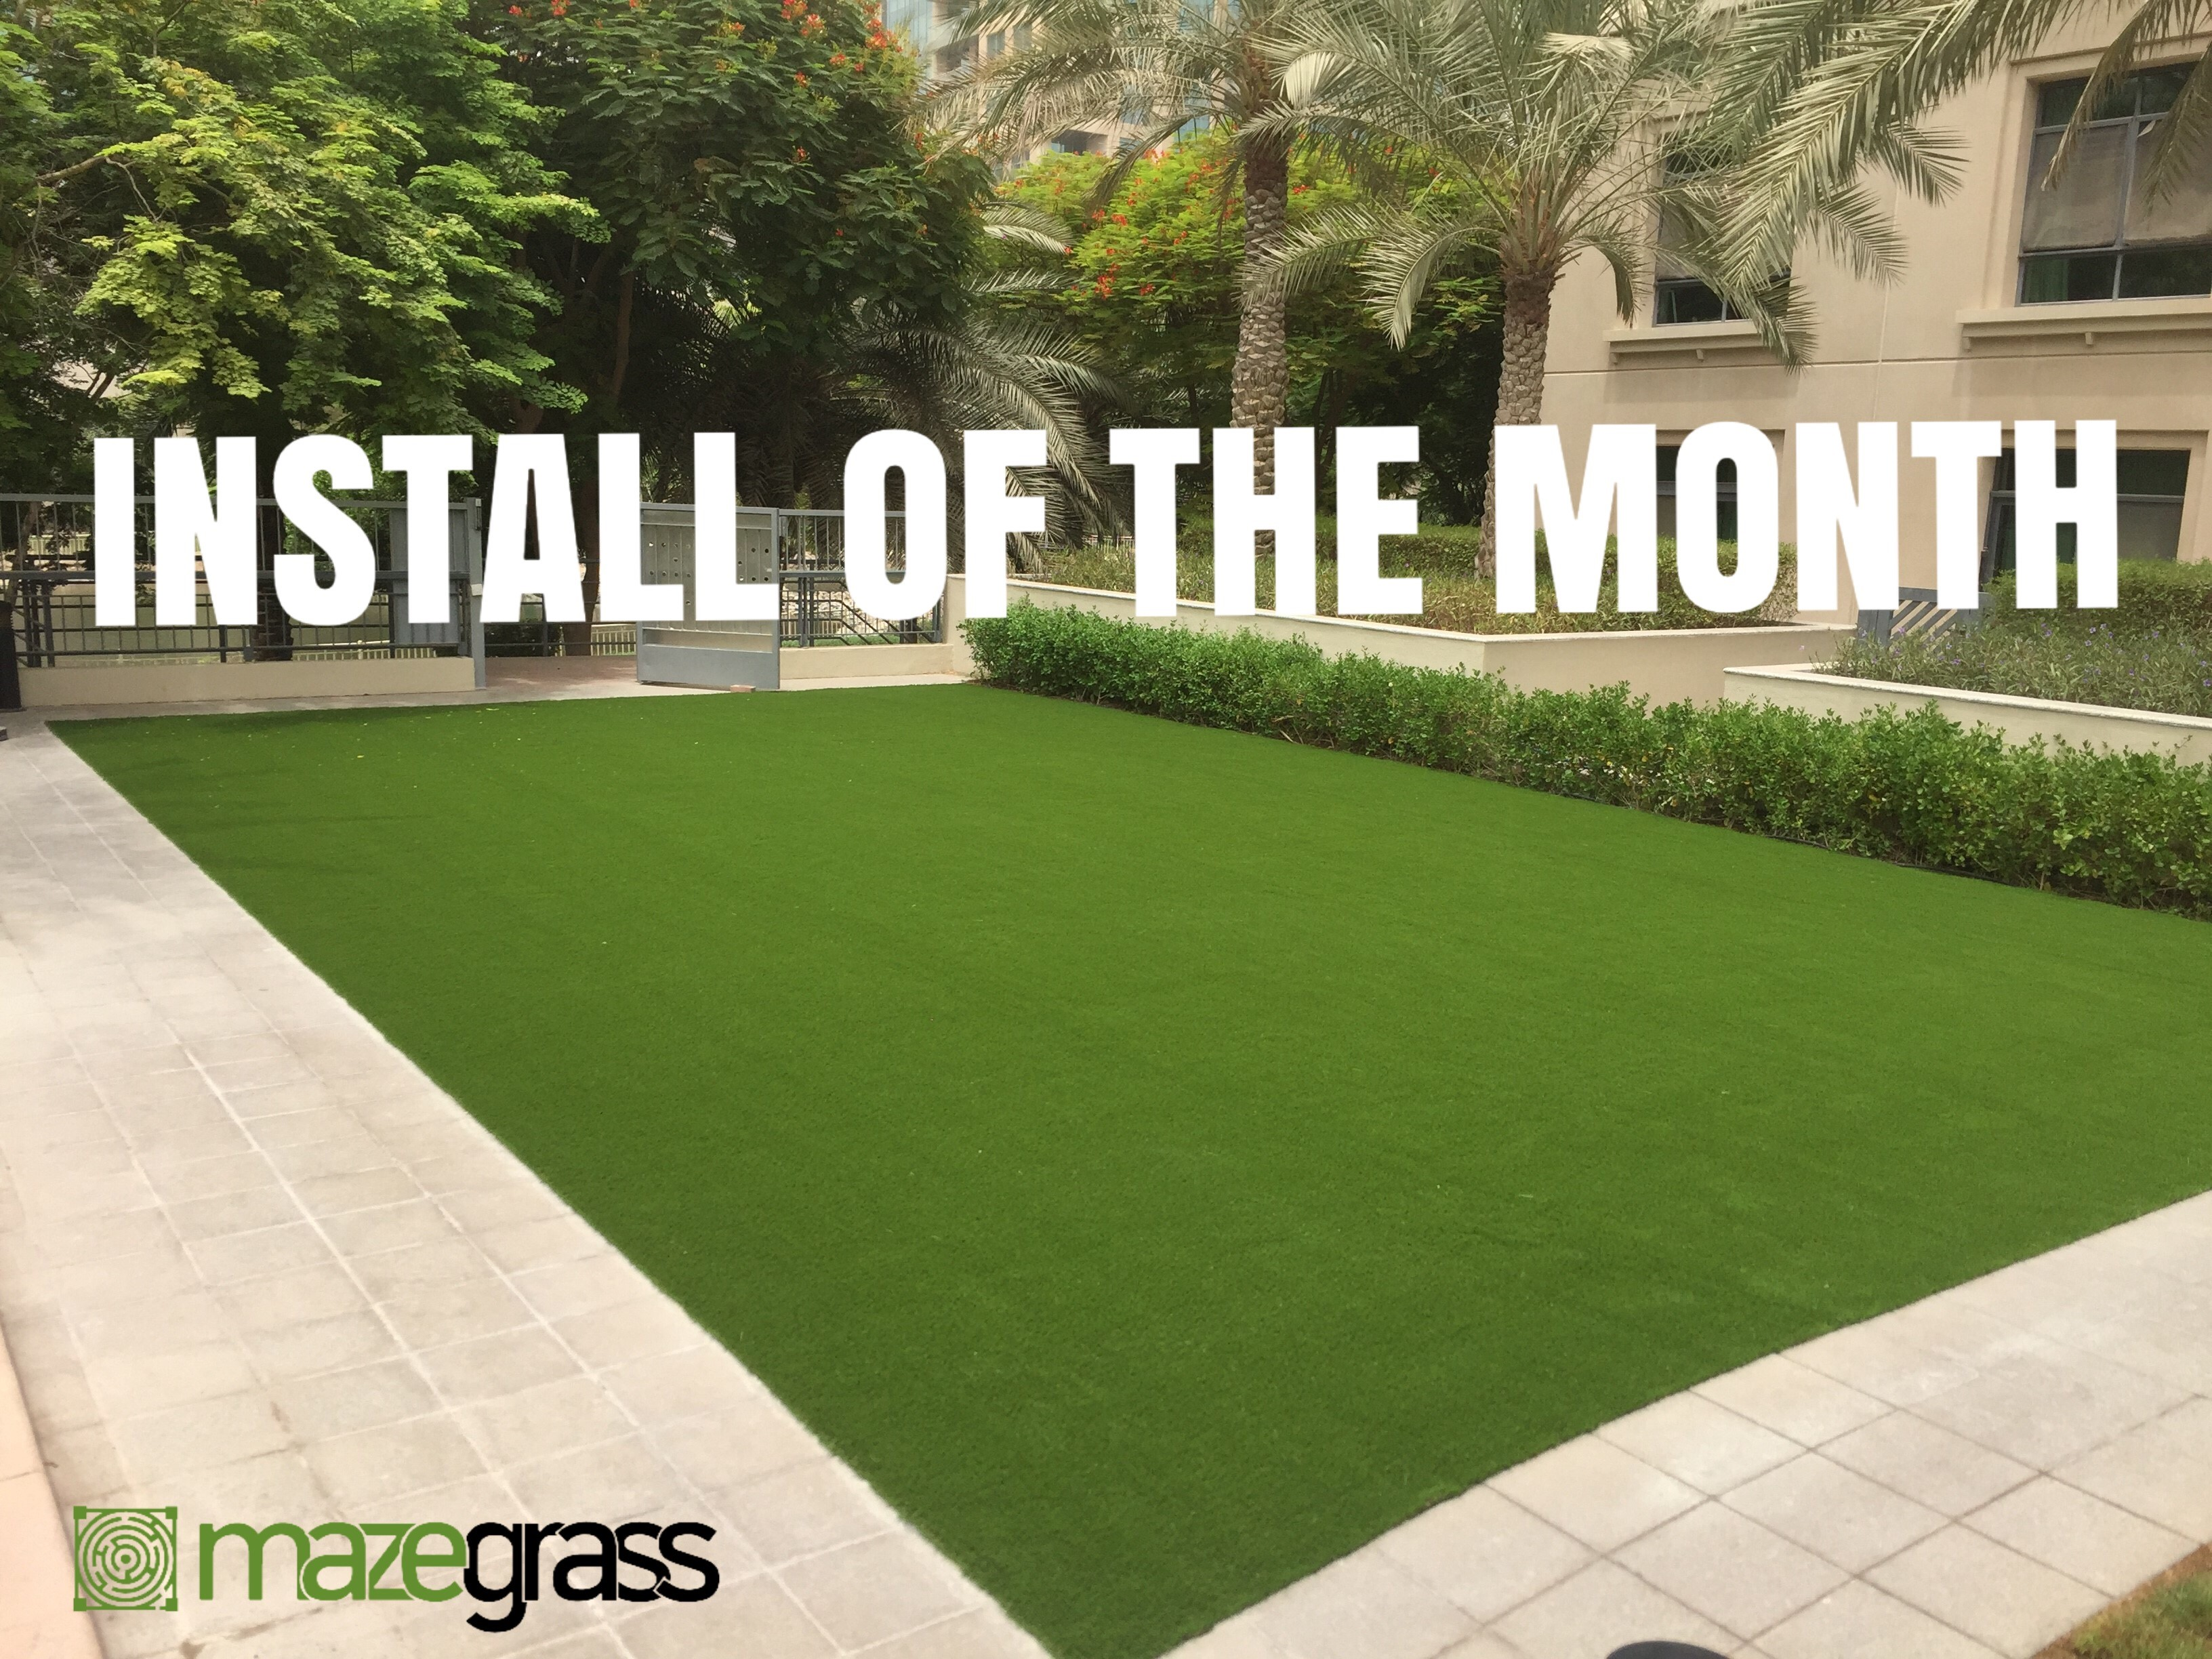 Installation of the month - August 2018